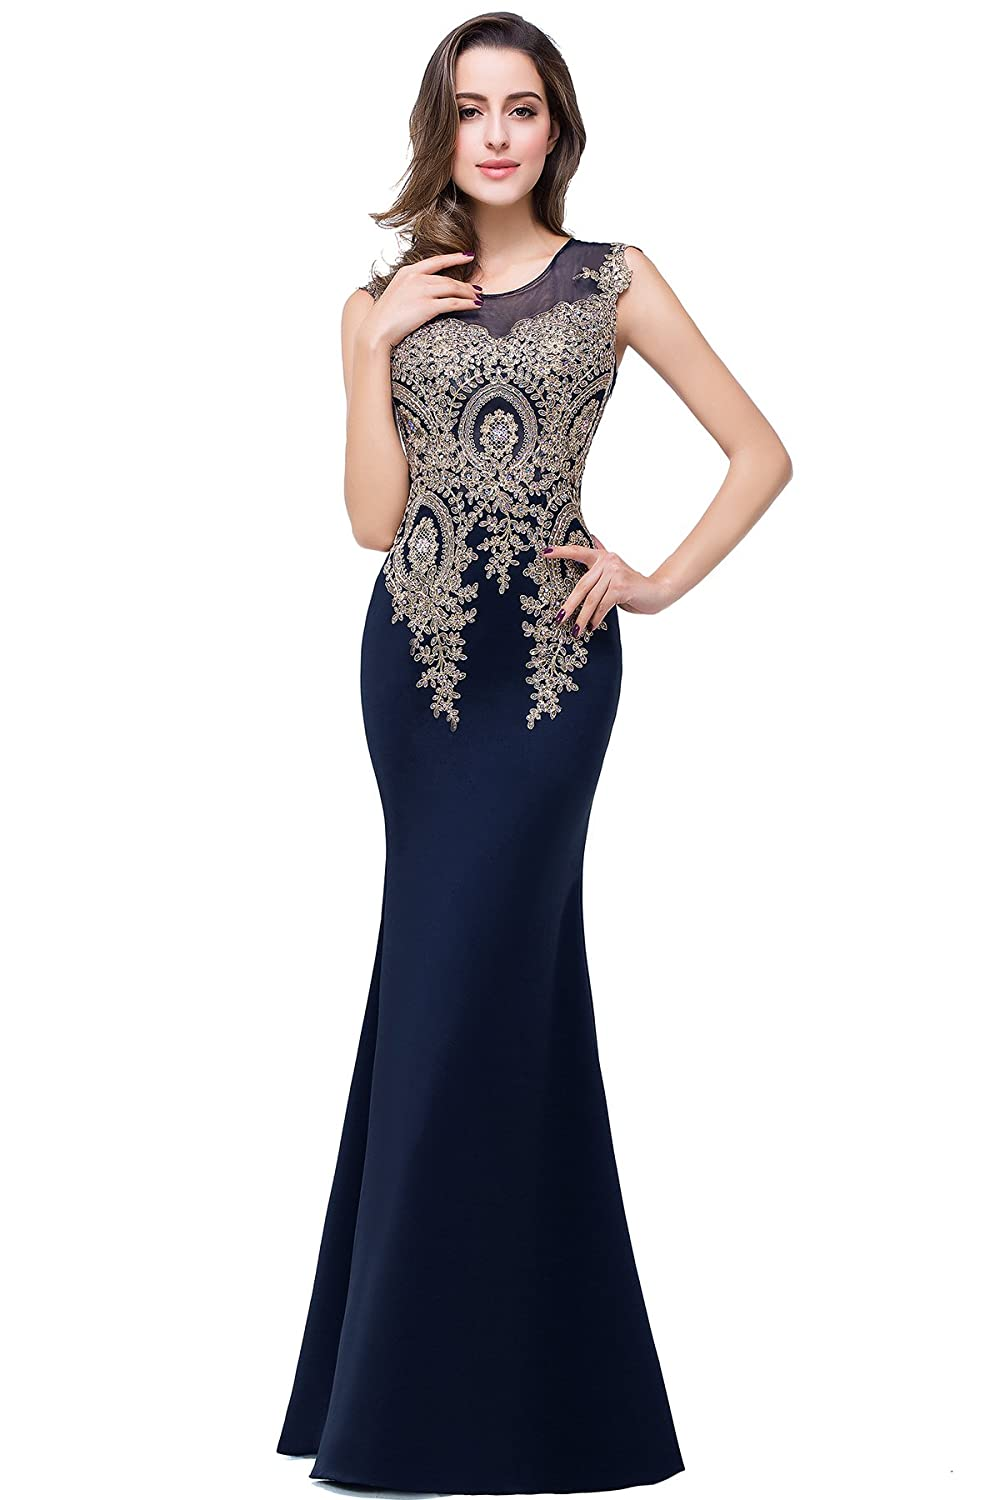 0311592996 Decoration with golden lace applique and beads. Zipper Side closure.  Mermaid Beaded evening Dress Black lace formal dress Sexy party dress